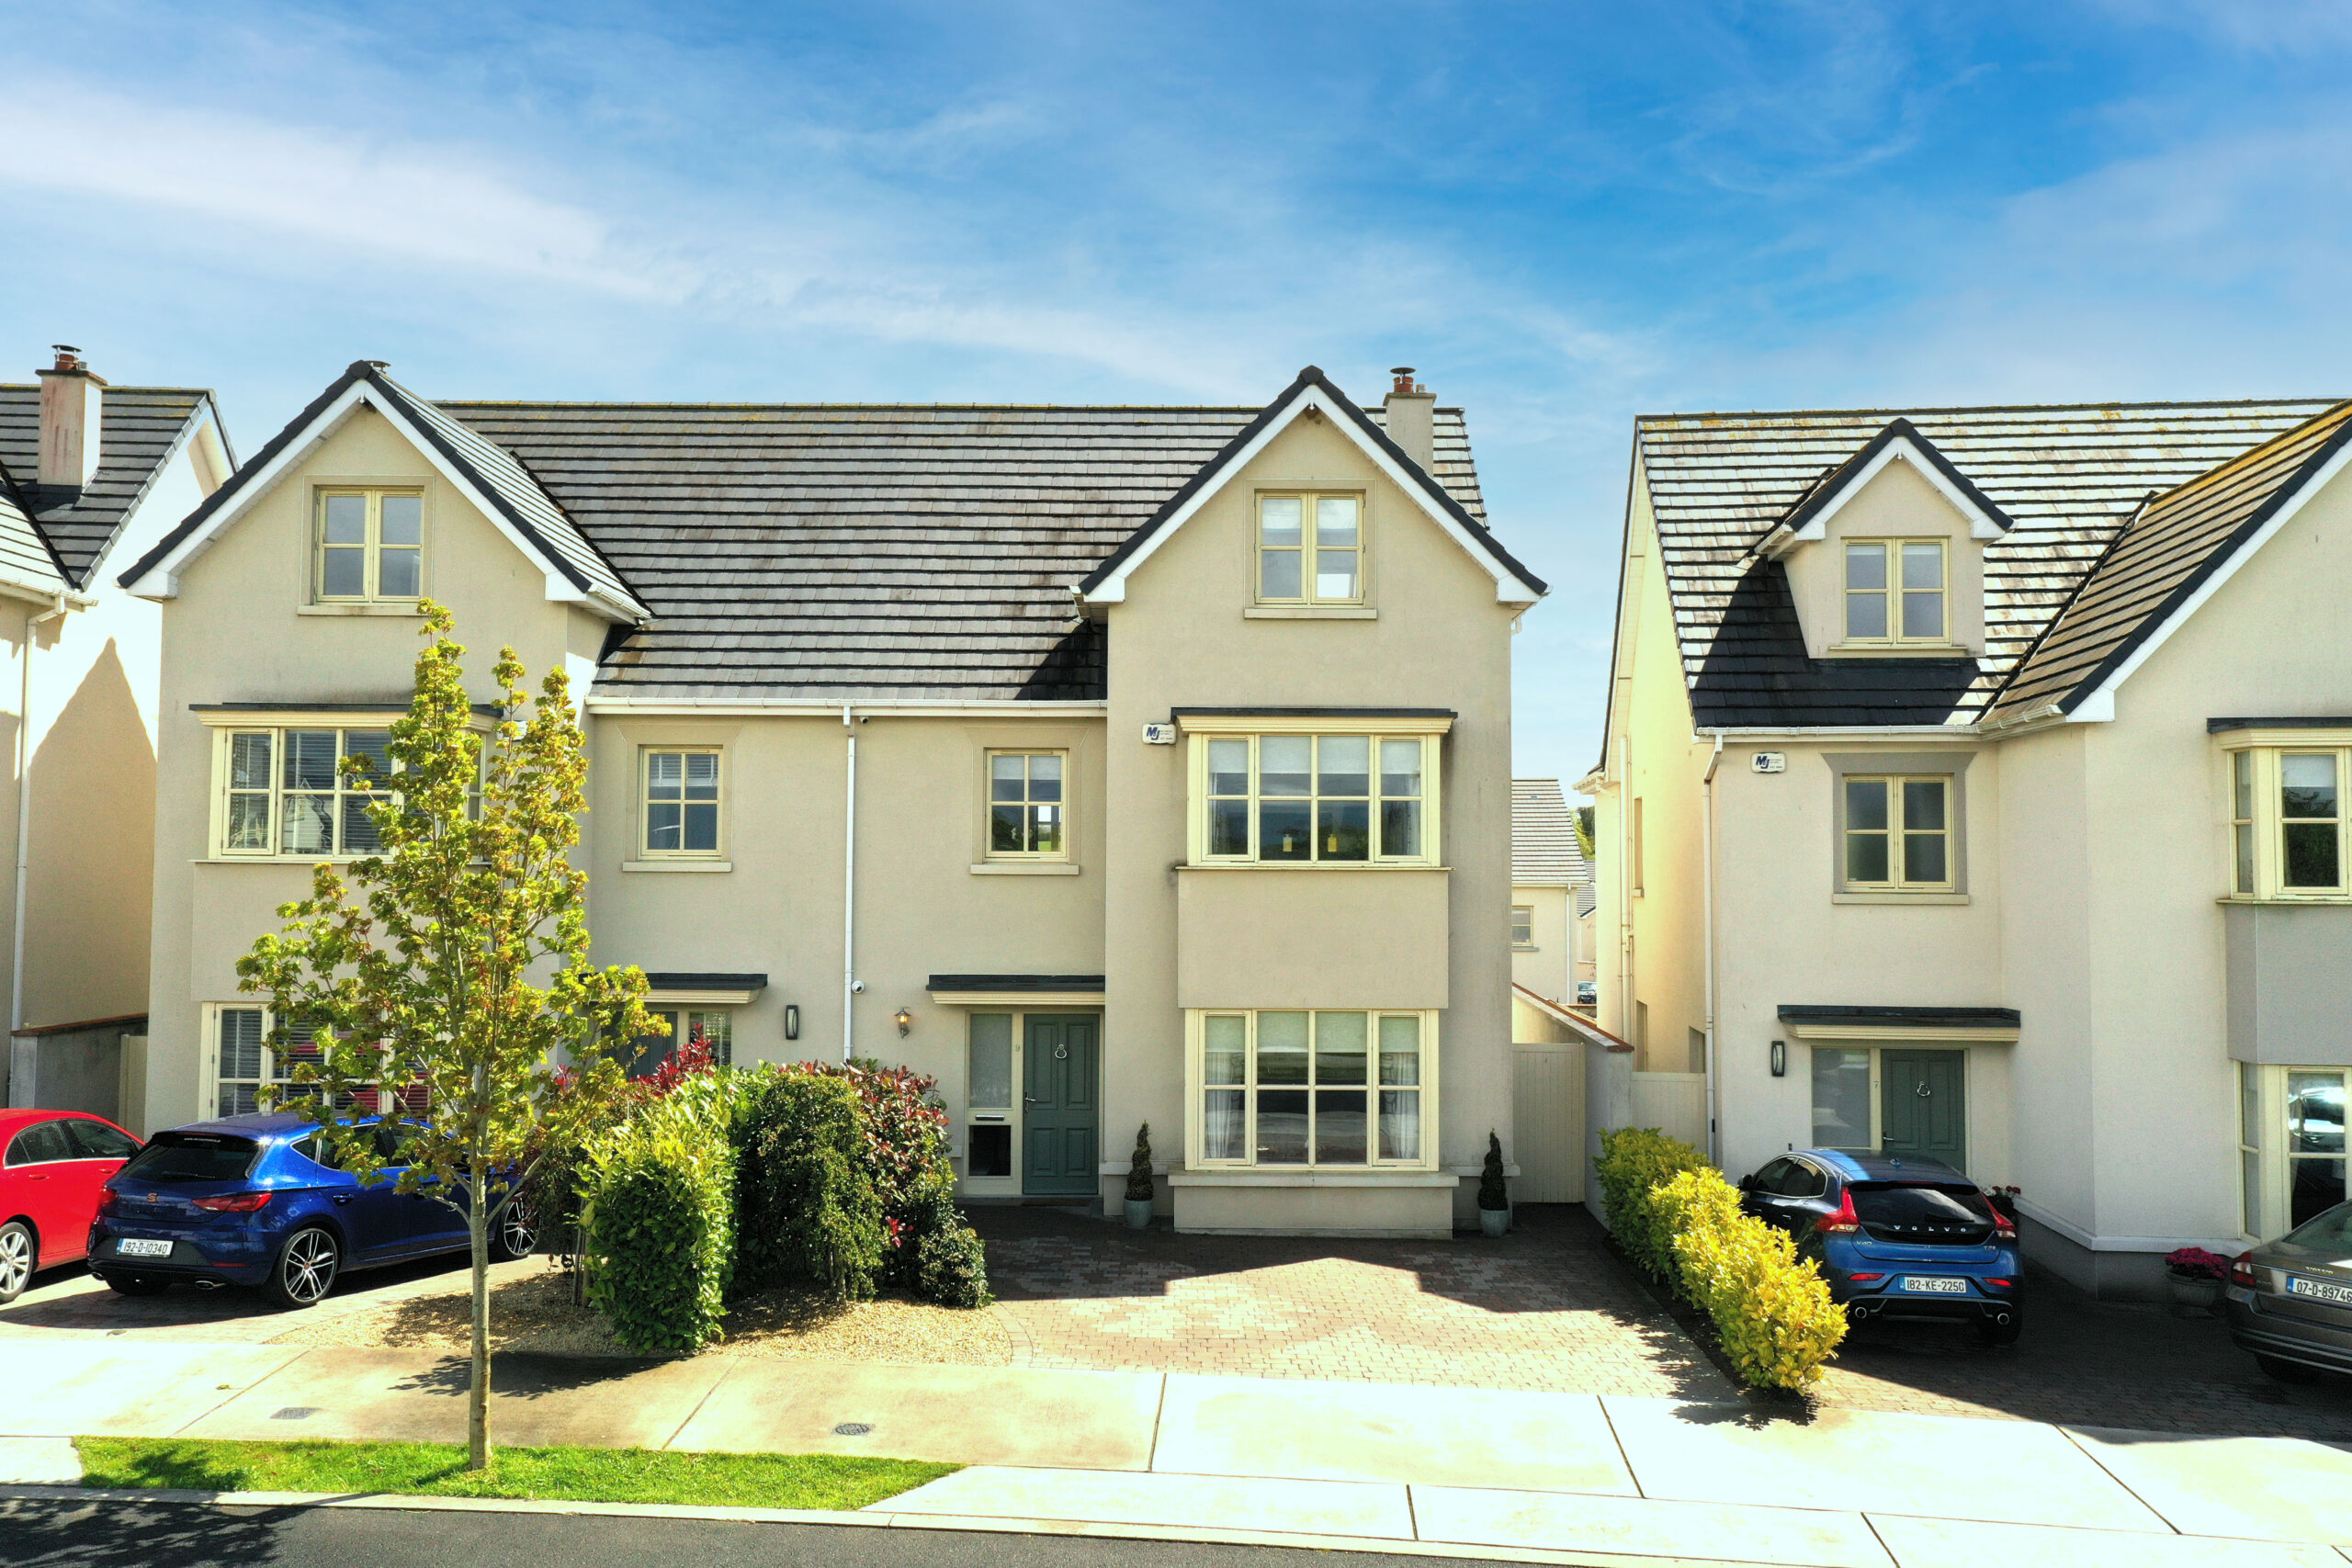 9 The Drive Piper's Hill, Naas